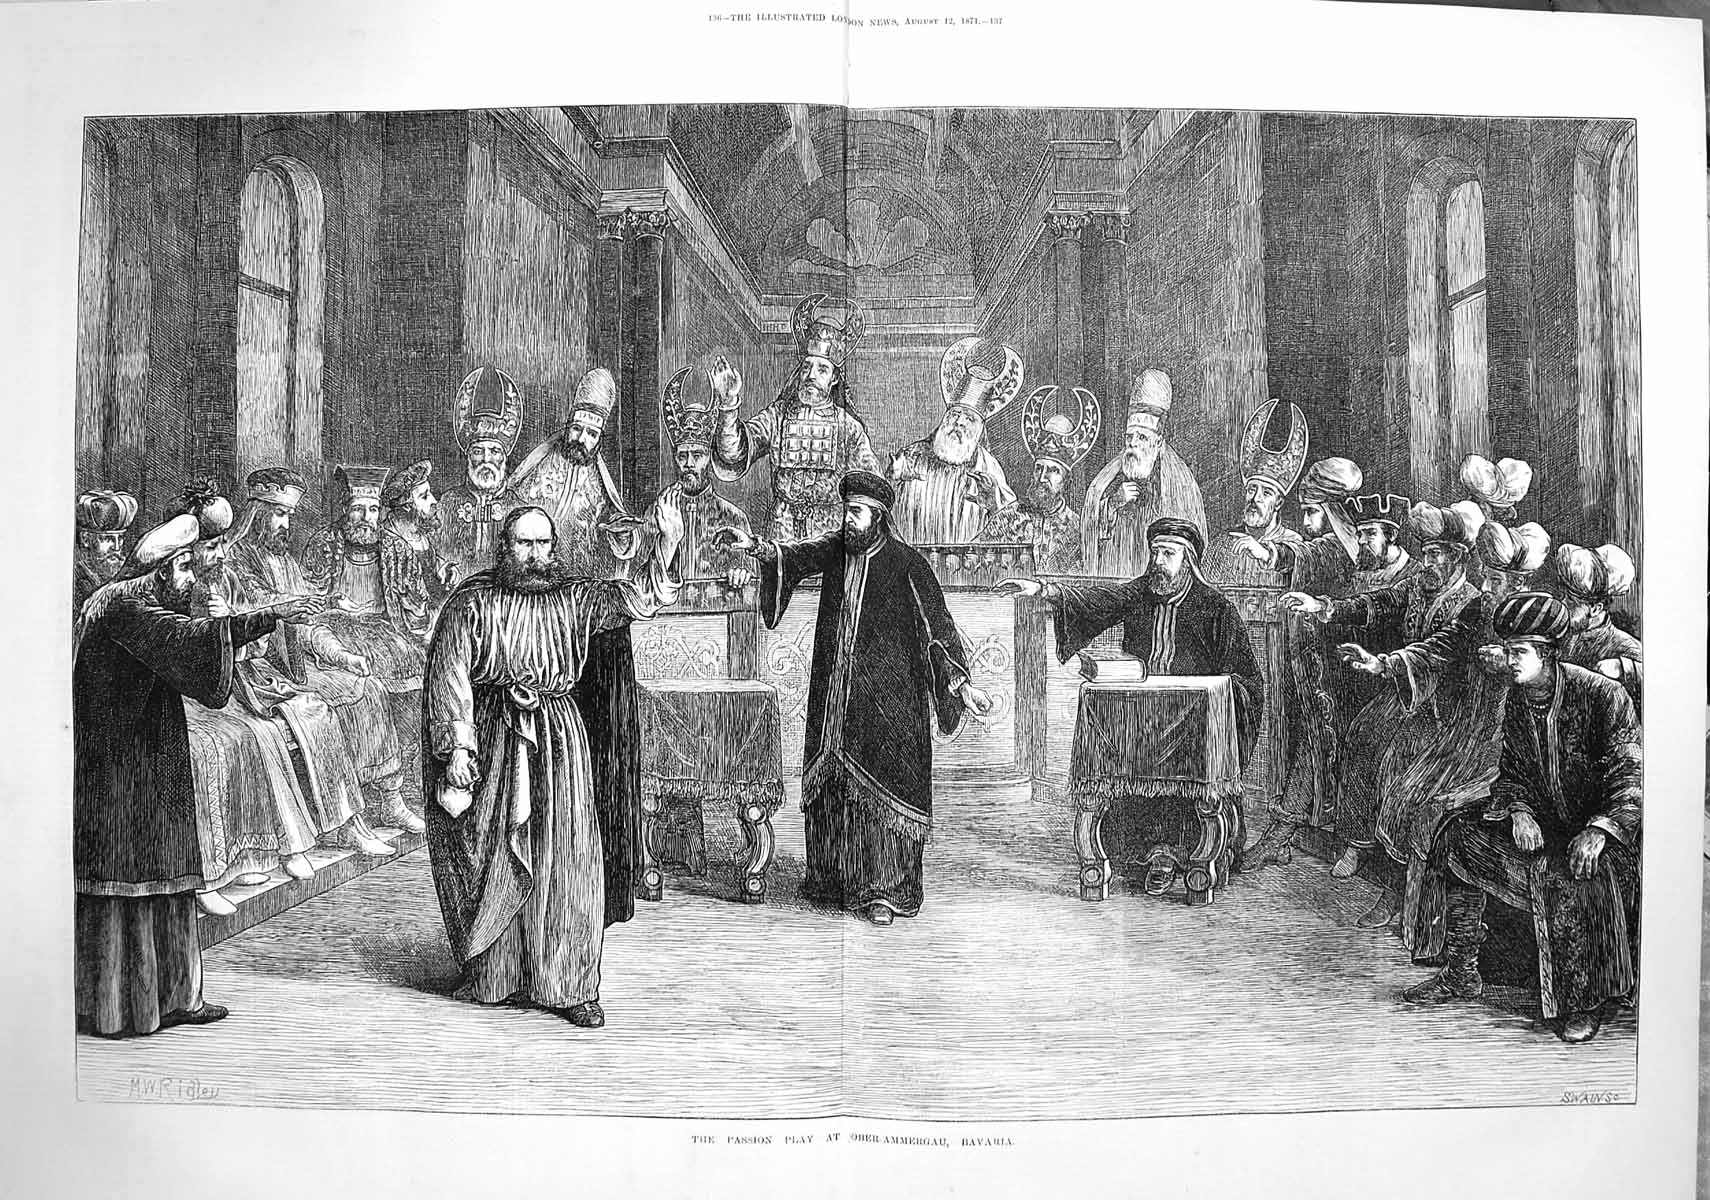 Old-Antique-Print-3646-1871-Passion-Play-Ober-Ammergau-Bavaria-Fine-Art